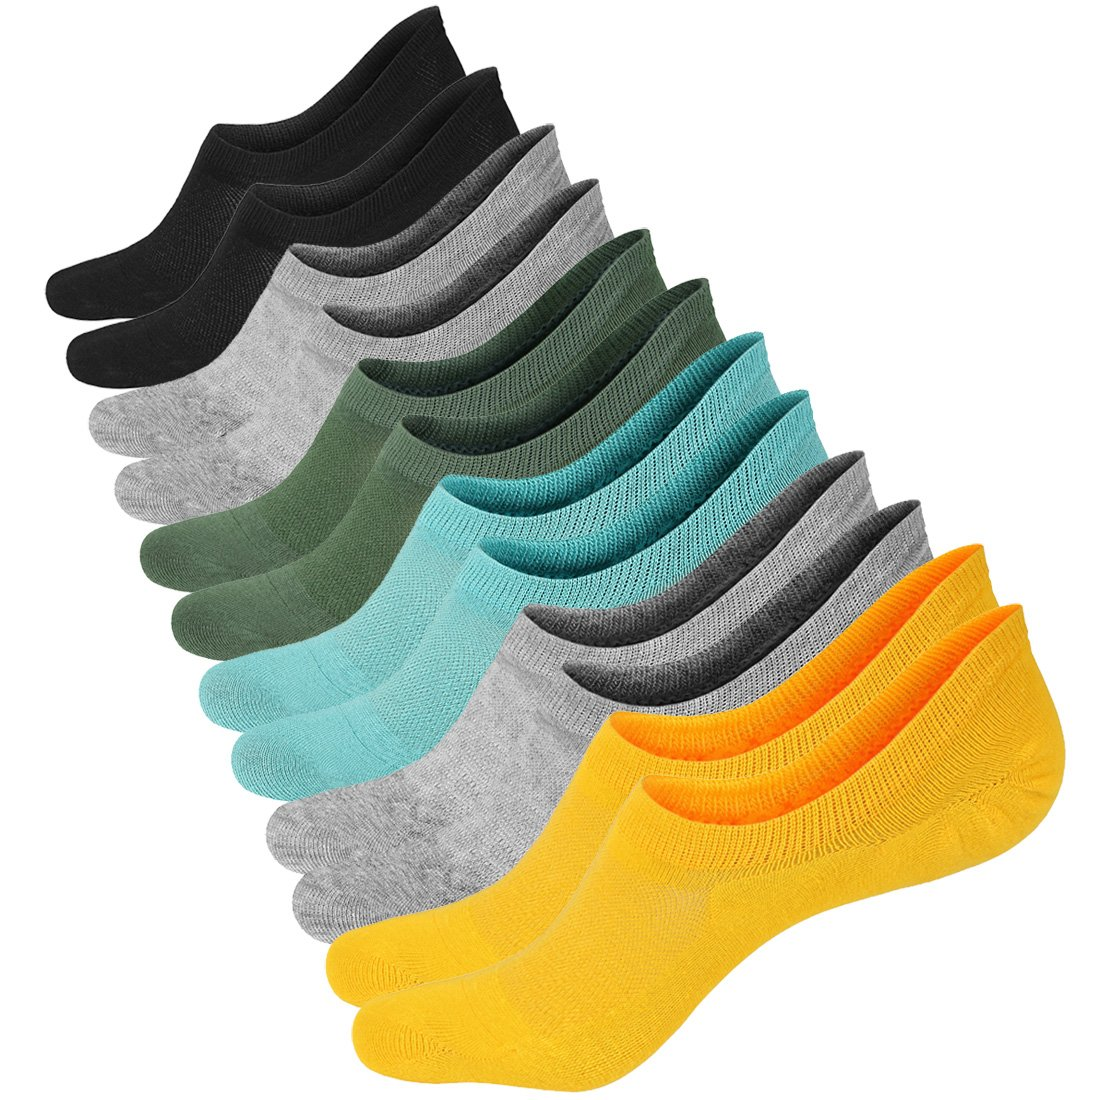 No Show Liner Socks Women - Cotton Low Cut Socks Bright Casual Non Slip Colored 6 Pack